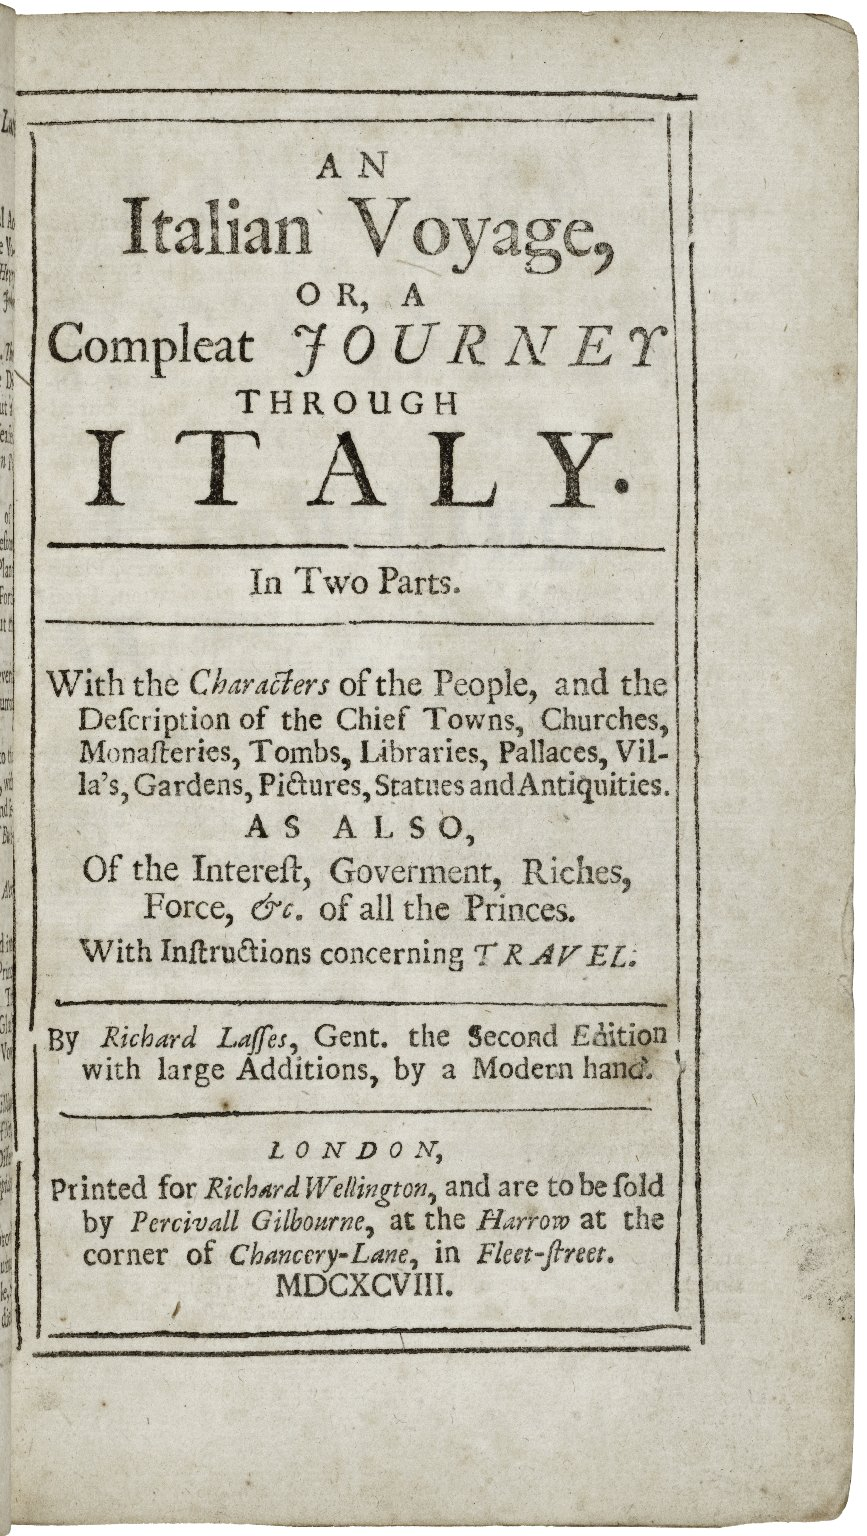 [Voyage of Italy] An Italian voyage, or, A compleat journey through Italy...